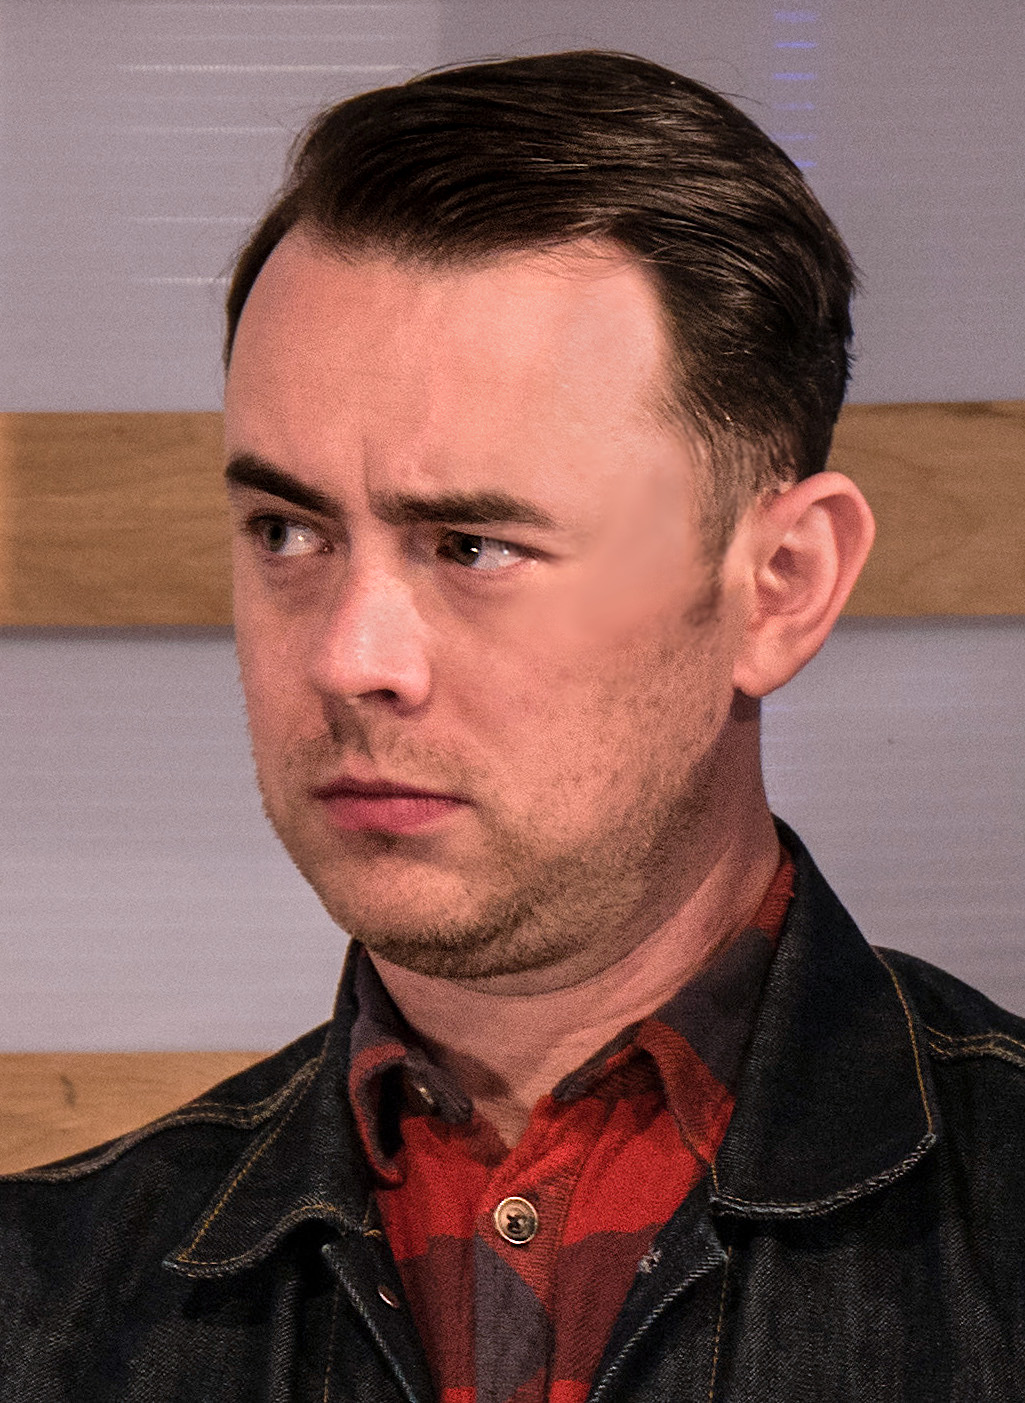 The 40-year old son of father Tom Hanks and mother Samantha Lewes Colin Hanks in 2018 photo. Colin Hanks earned a  million dollar salary - leaving the net worth at 15 million in 2018